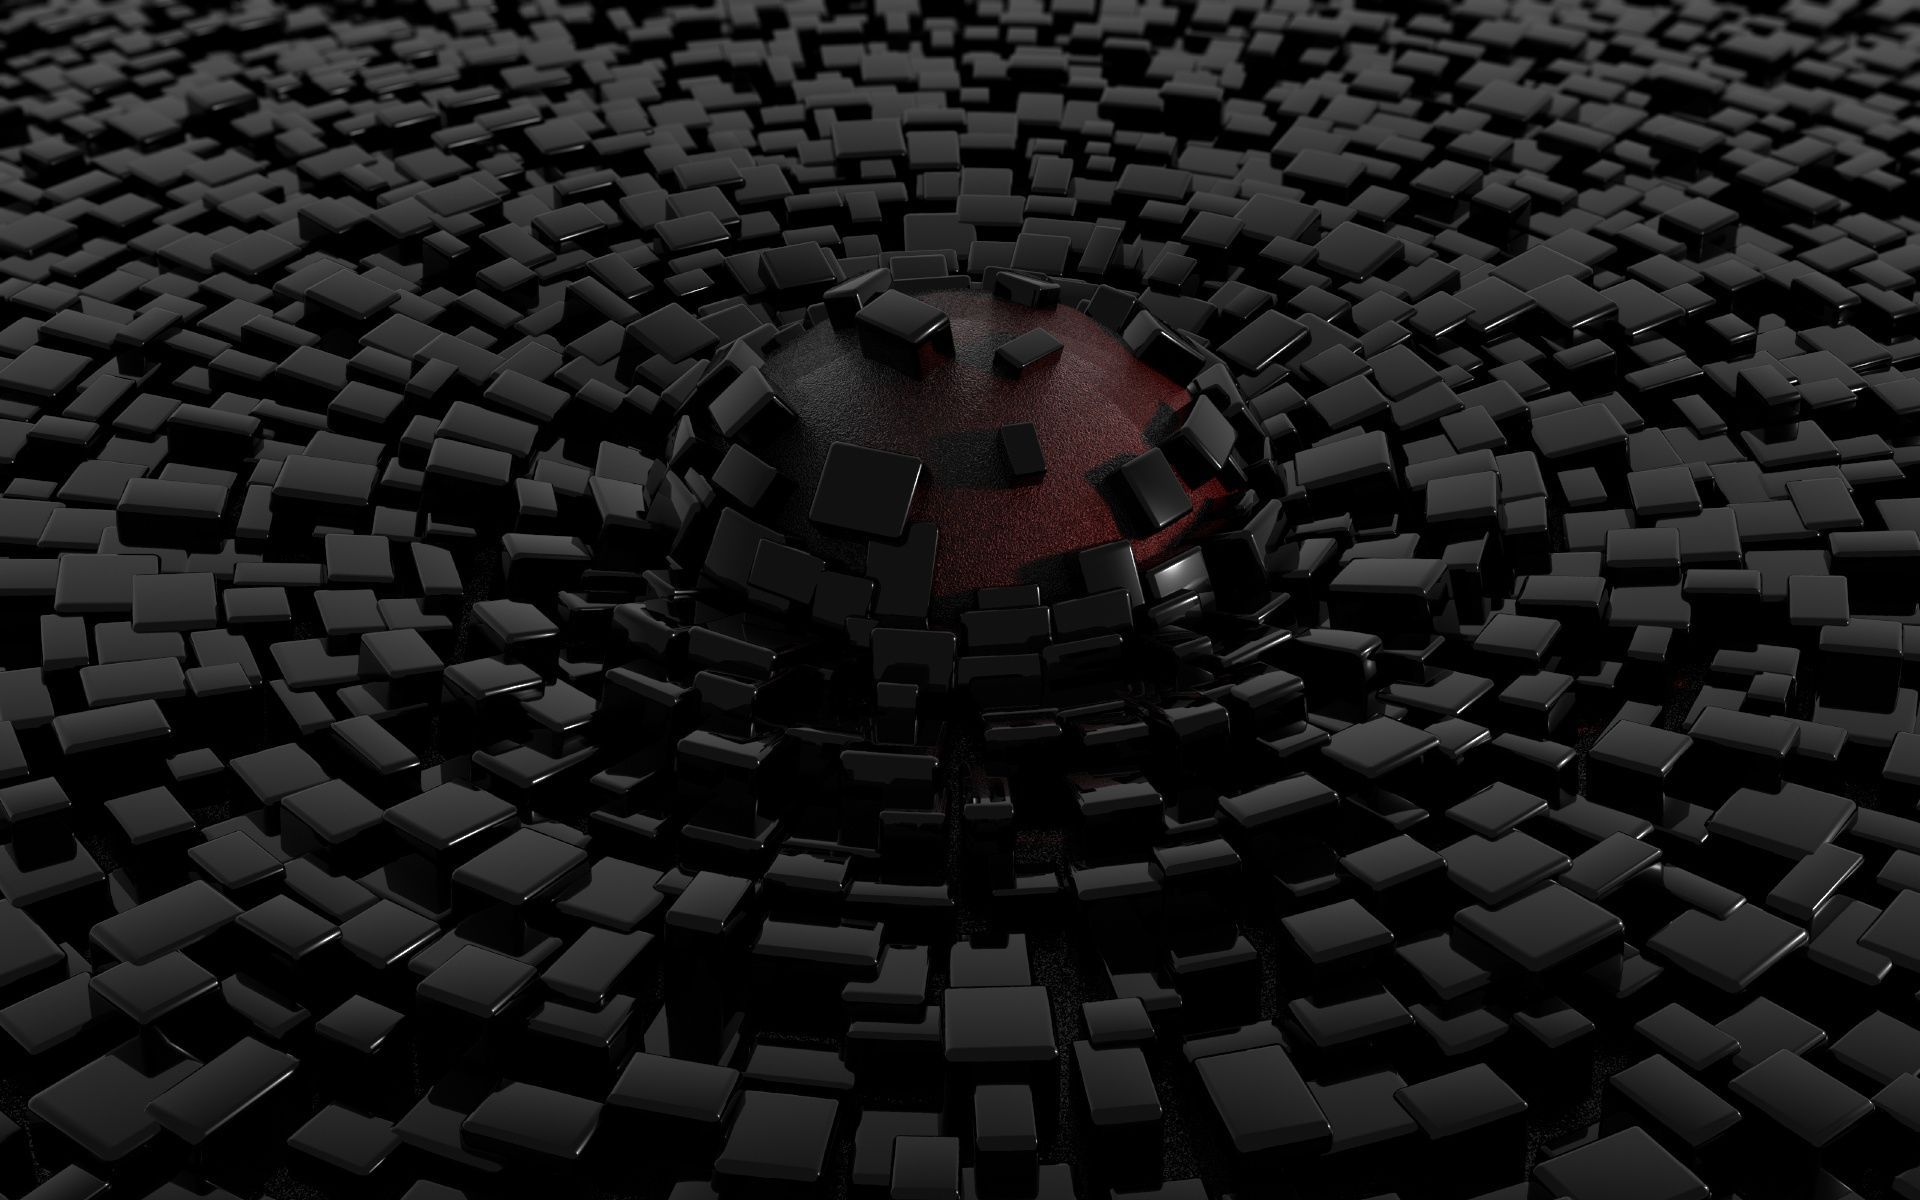 Download Free 3d Cubes Wallpapers 3d Cube Wallpaper Abstract Abstract Wallpaper